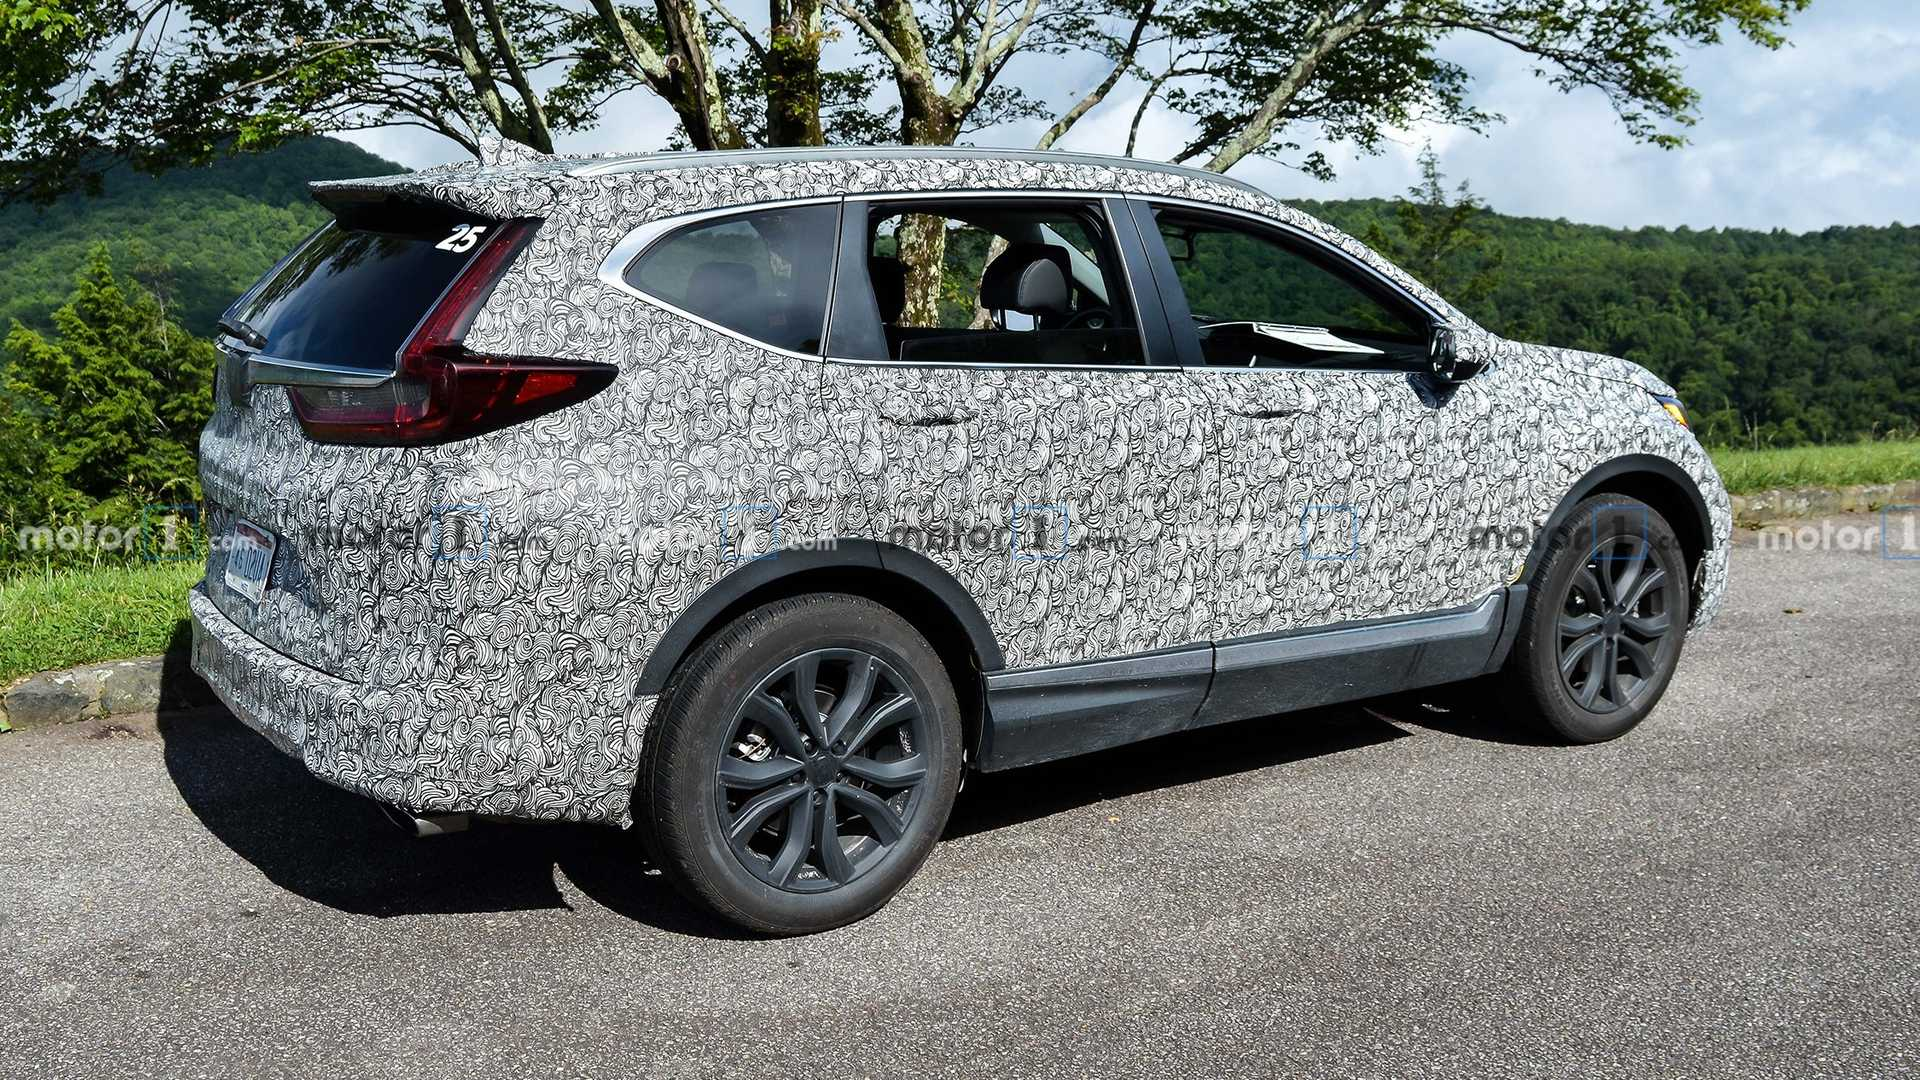 2020 Honda Cr V Usa Release Date Specs And Price >> 2020 Honda Cr V Facelift Spied For The First Time